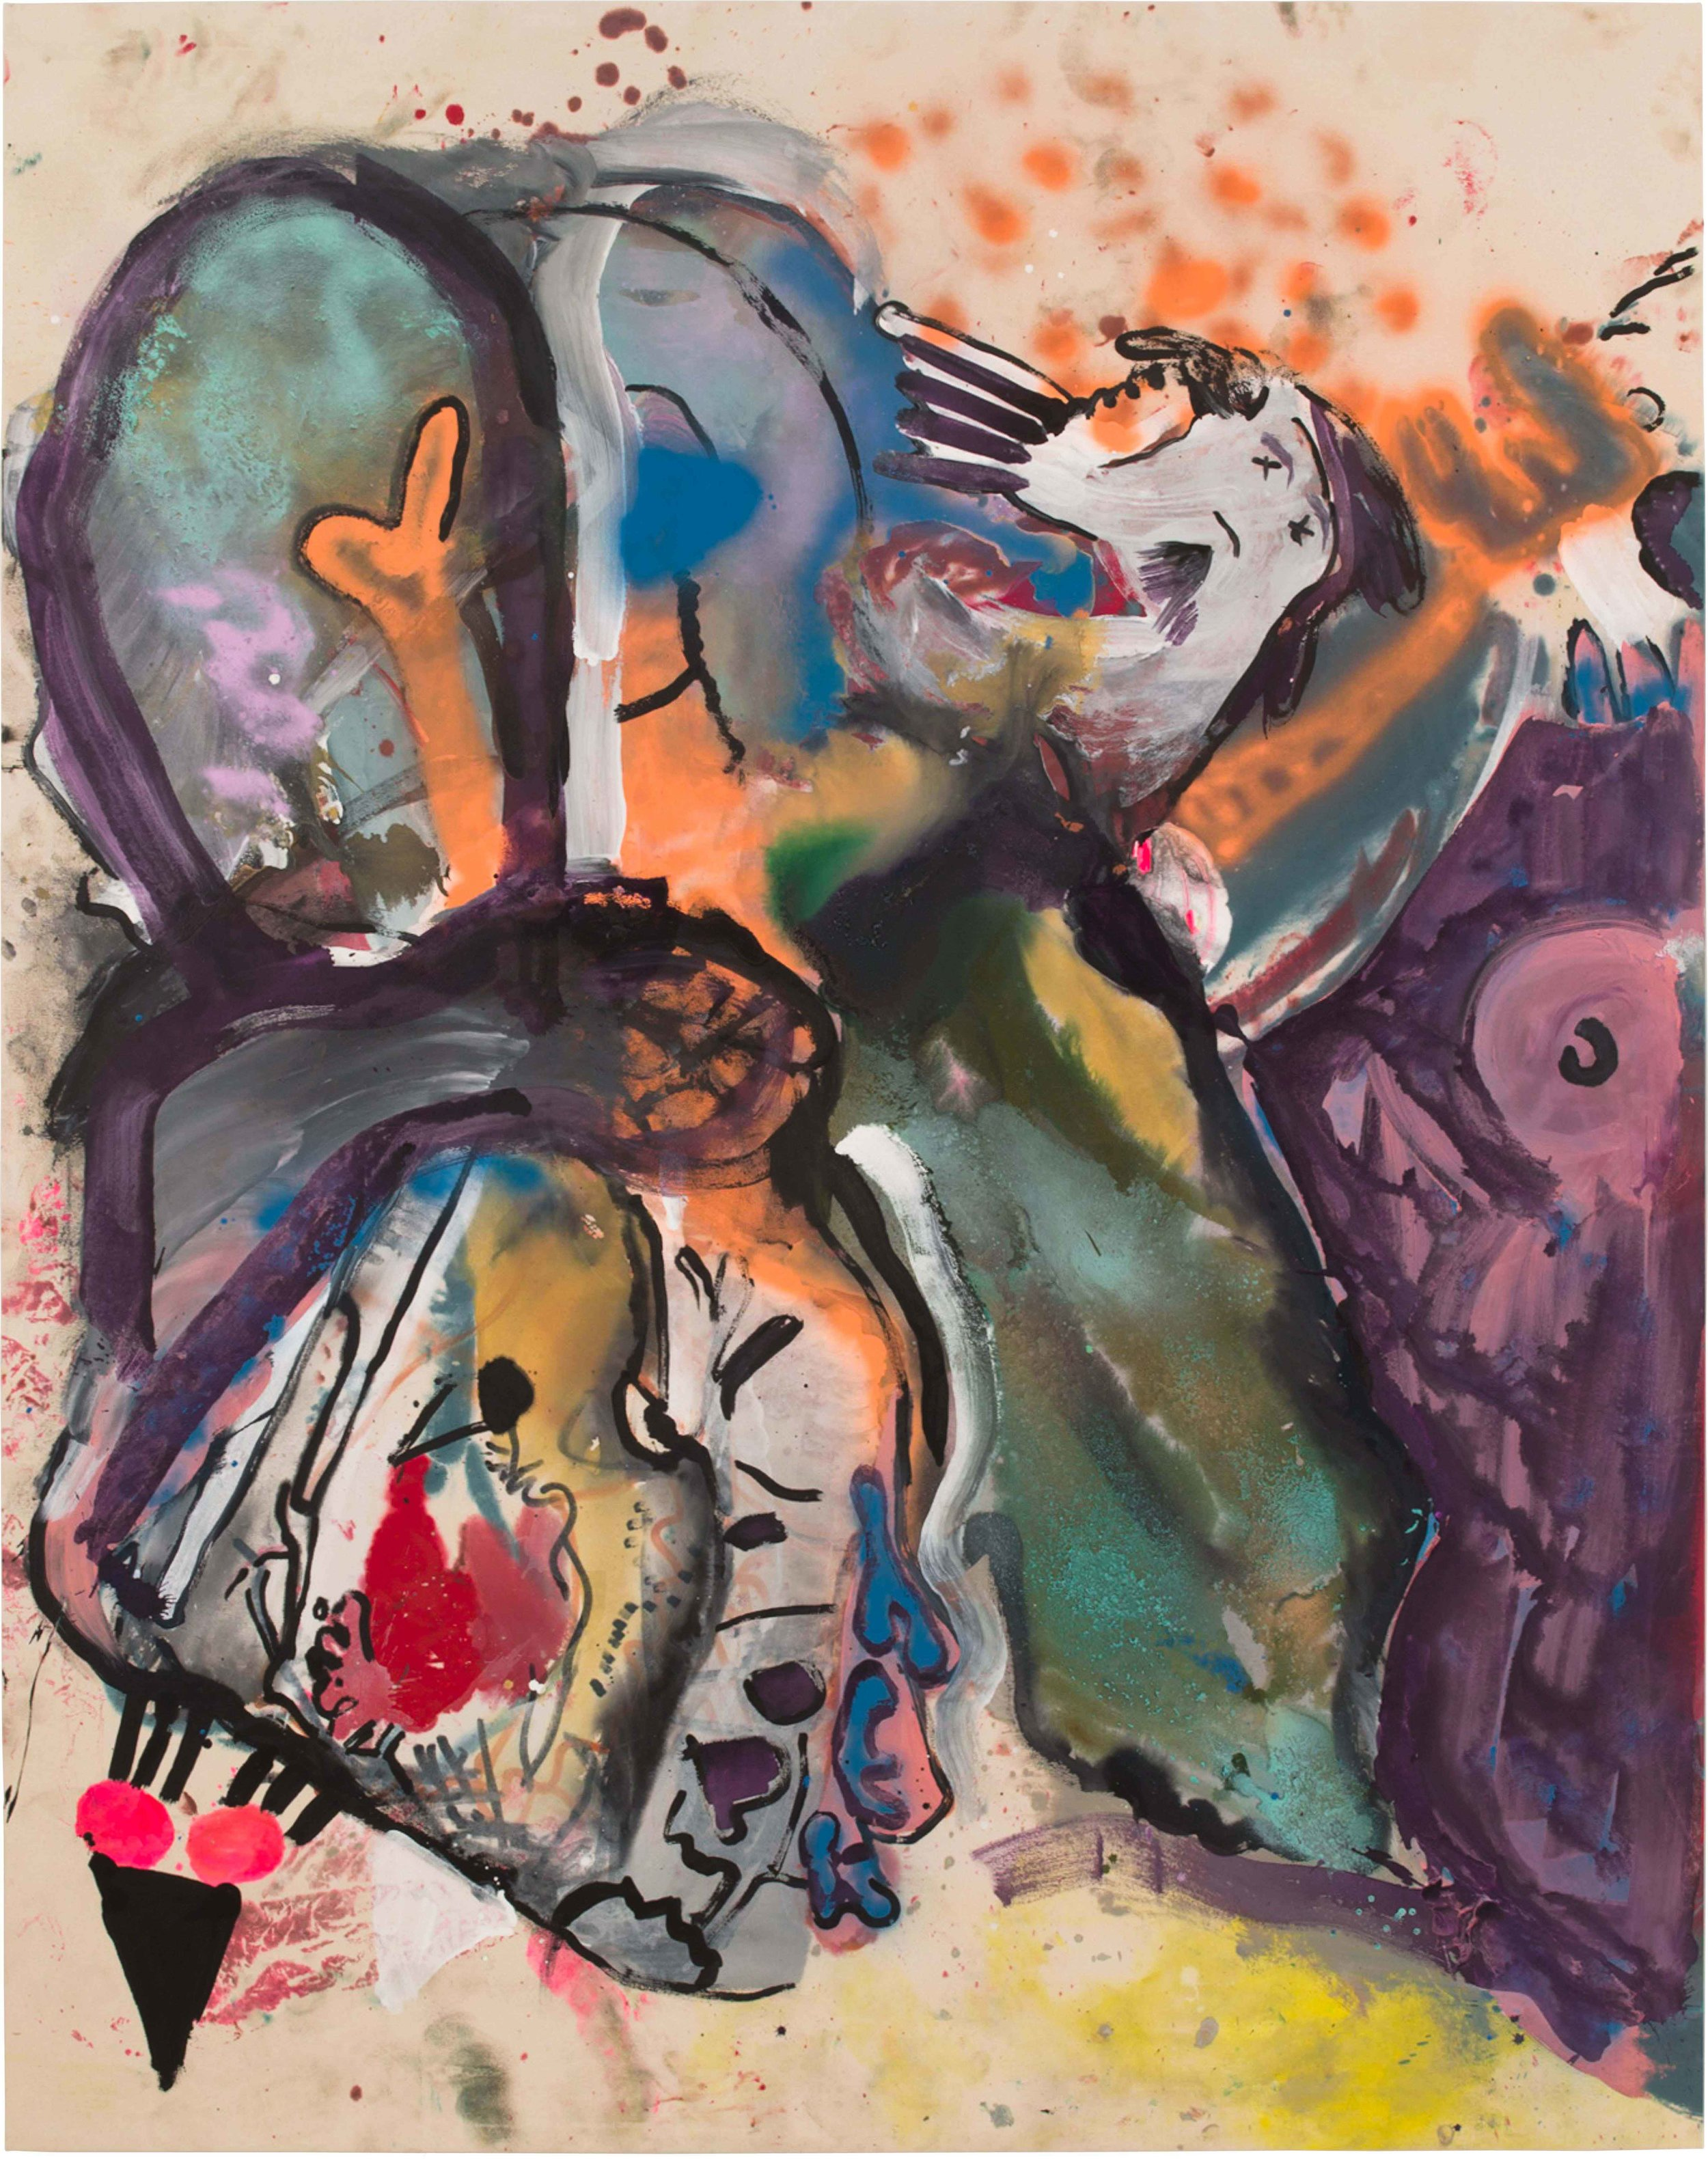 Drew Beattie and Ben Shepard  Bird Mountain  2015 acrylic and spray paint on canvas 96 x 76 inches